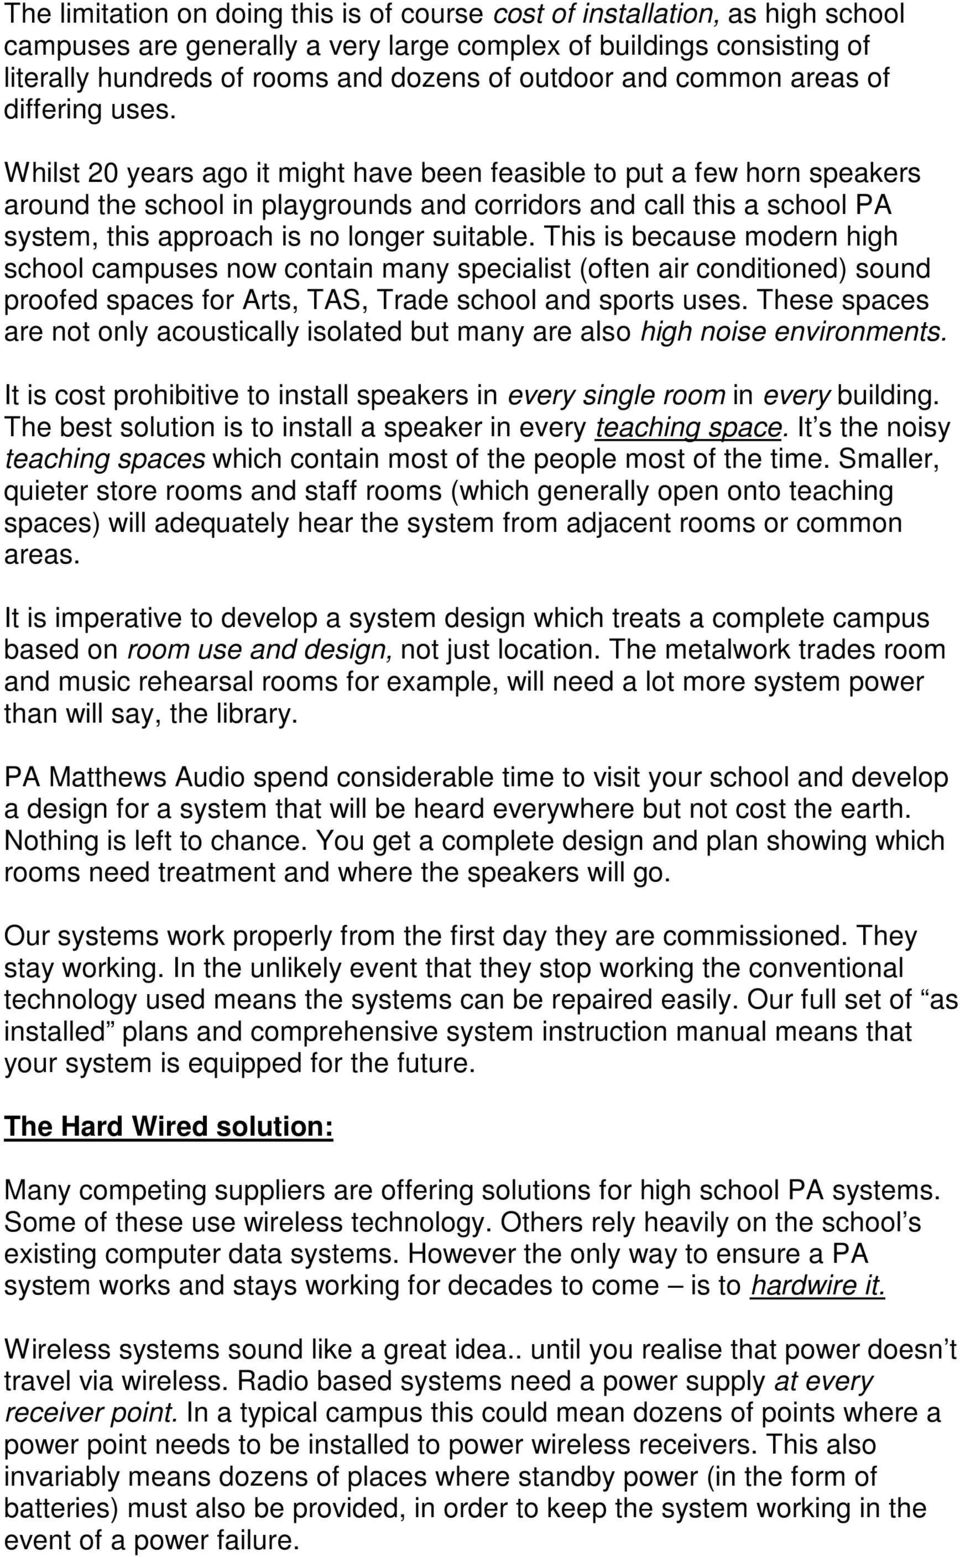 Whilst 20 years ago it might have been feasible to put a few horn speakers around the school in playgrounds and corridors and call this a school PA system, this approach is no longer suitable.